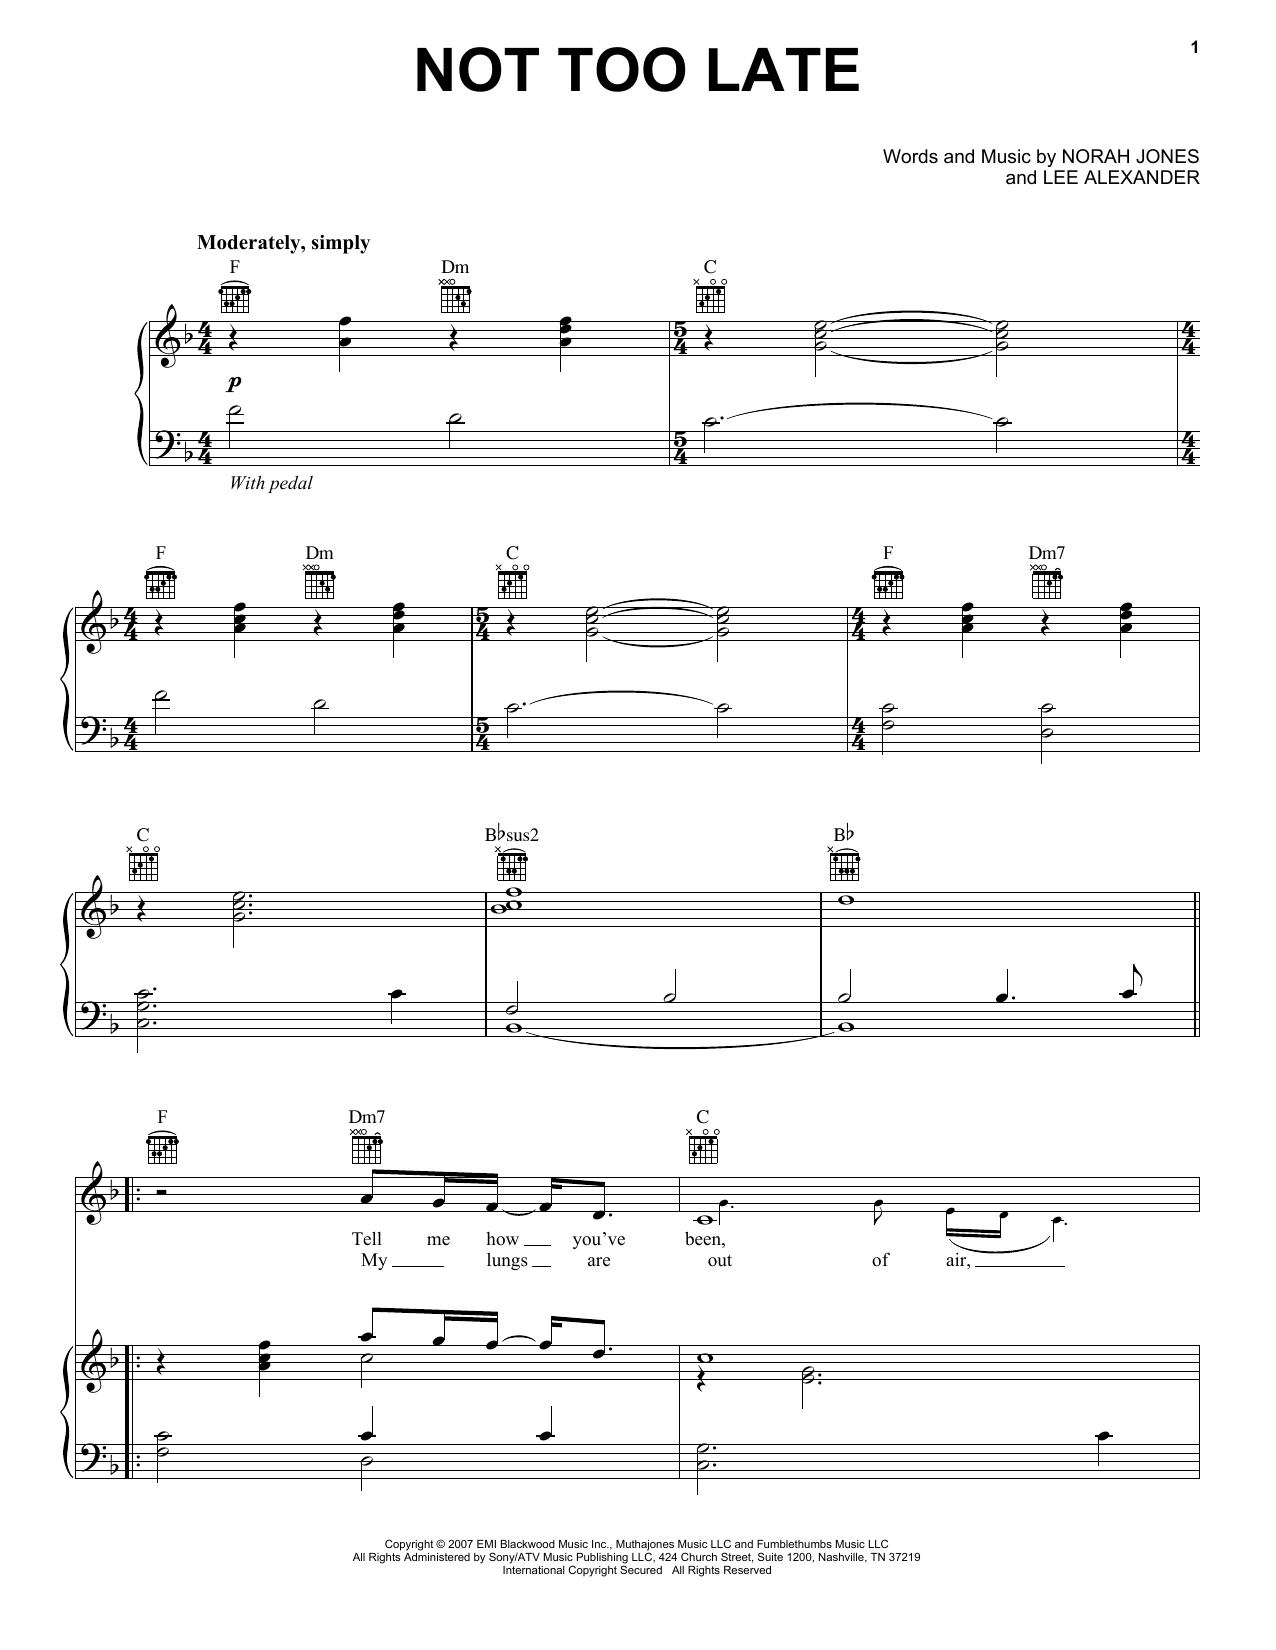 Not Too Late sheet music for voice, piano or guitar by Lee Alexander